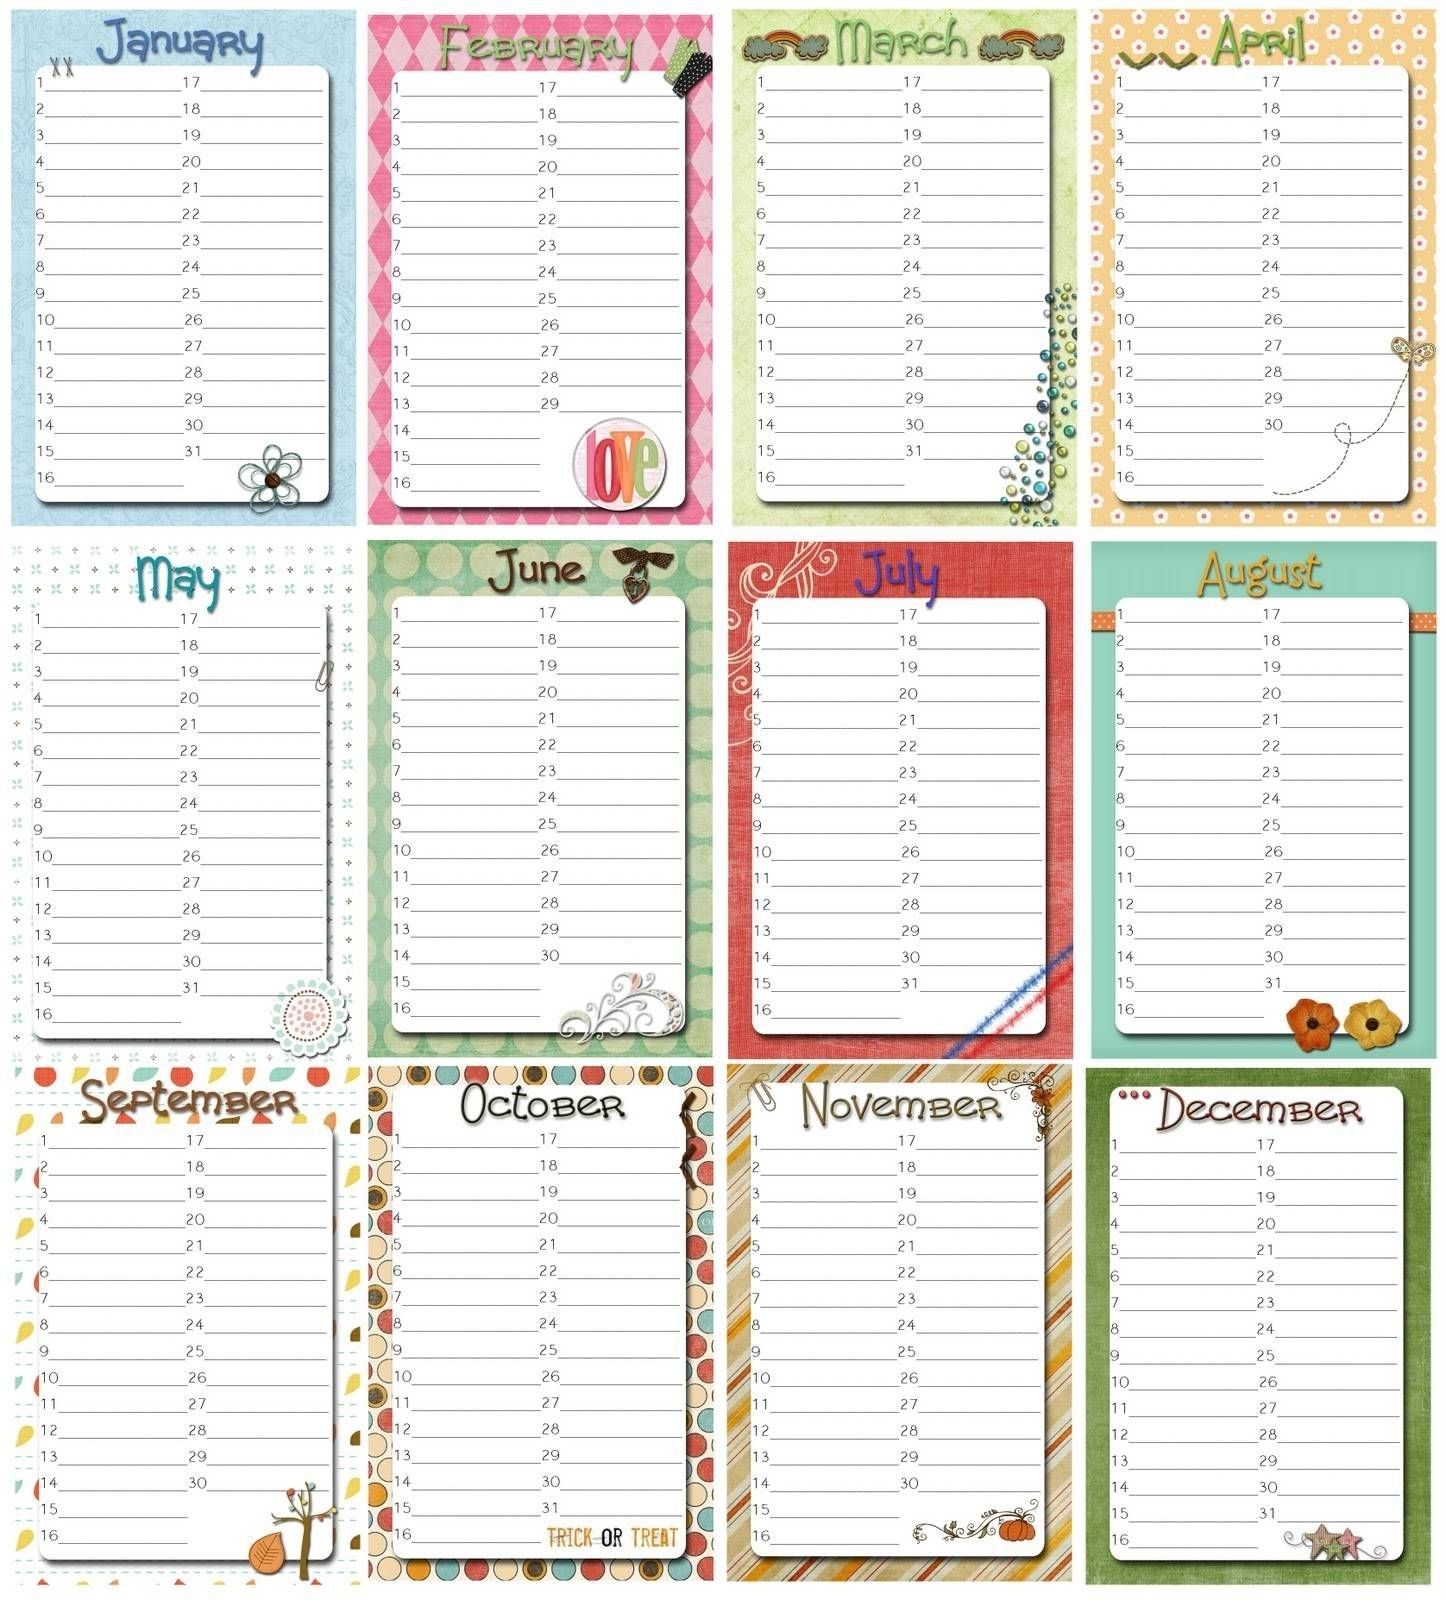 Free Perpetual Calendar Template | Posts Related To Perpetual intended for Free Printable Perpetual Calendar Templates